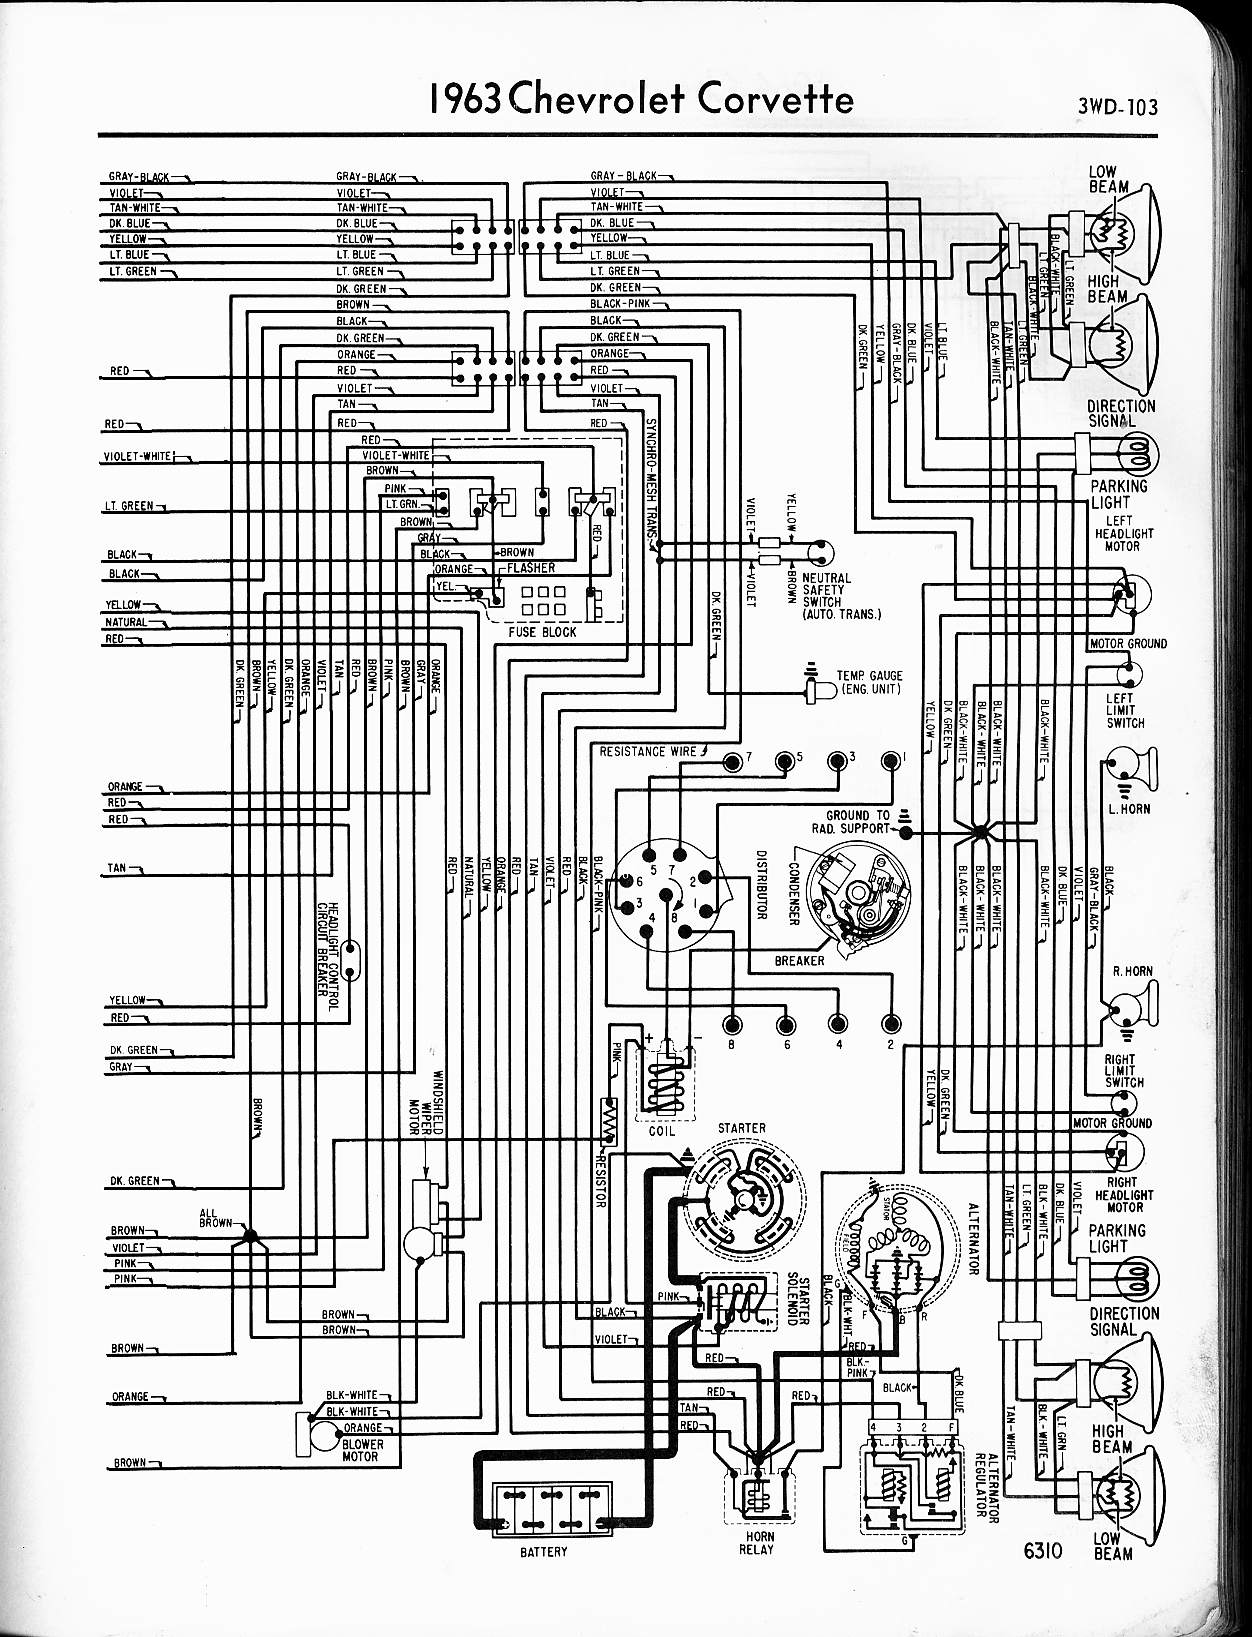 71 Corvette Wiring Diagram Detailed Schematics Goodall Startall 1960 Harness Opinions About U2022 Air Cond